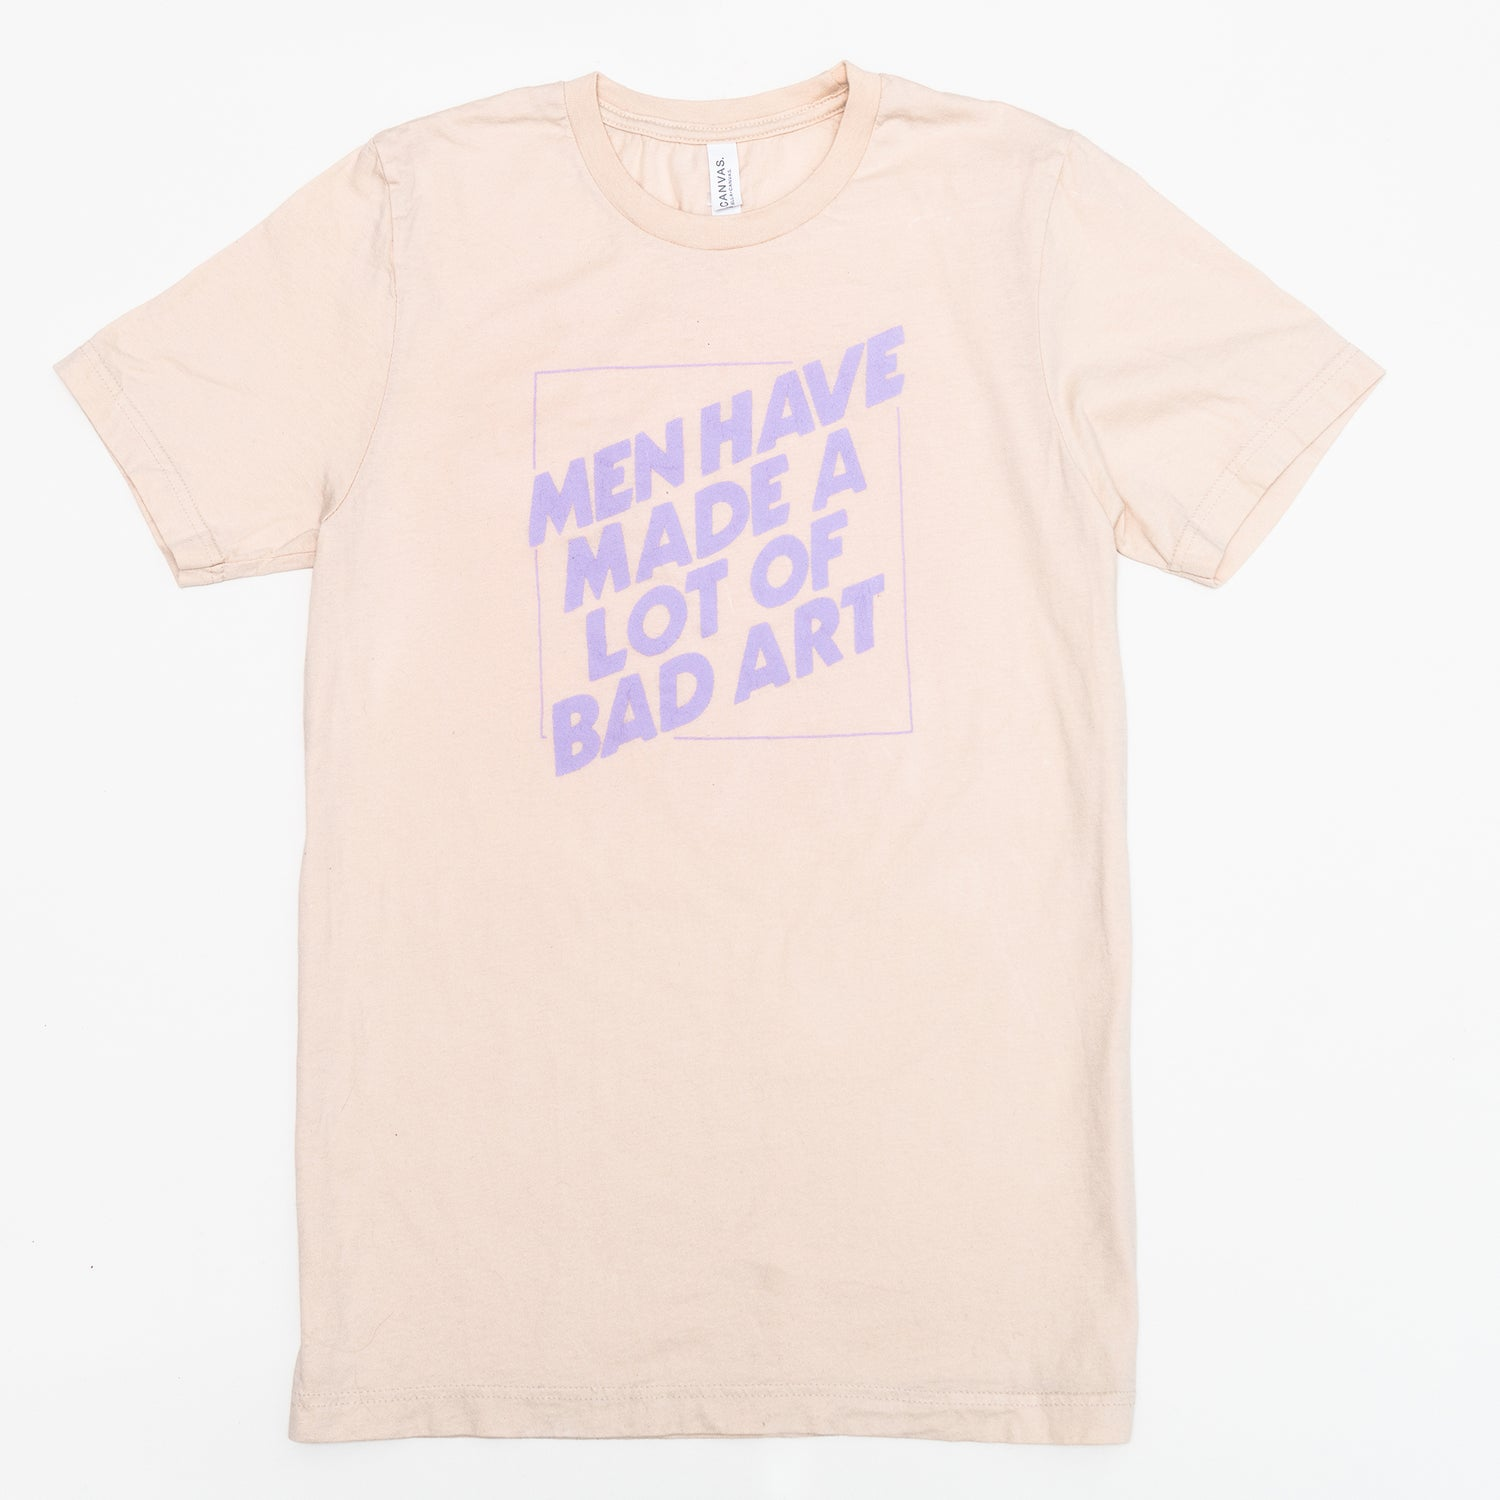 Image of Men Have Made a Lot of Bad Art Tee (Natural)